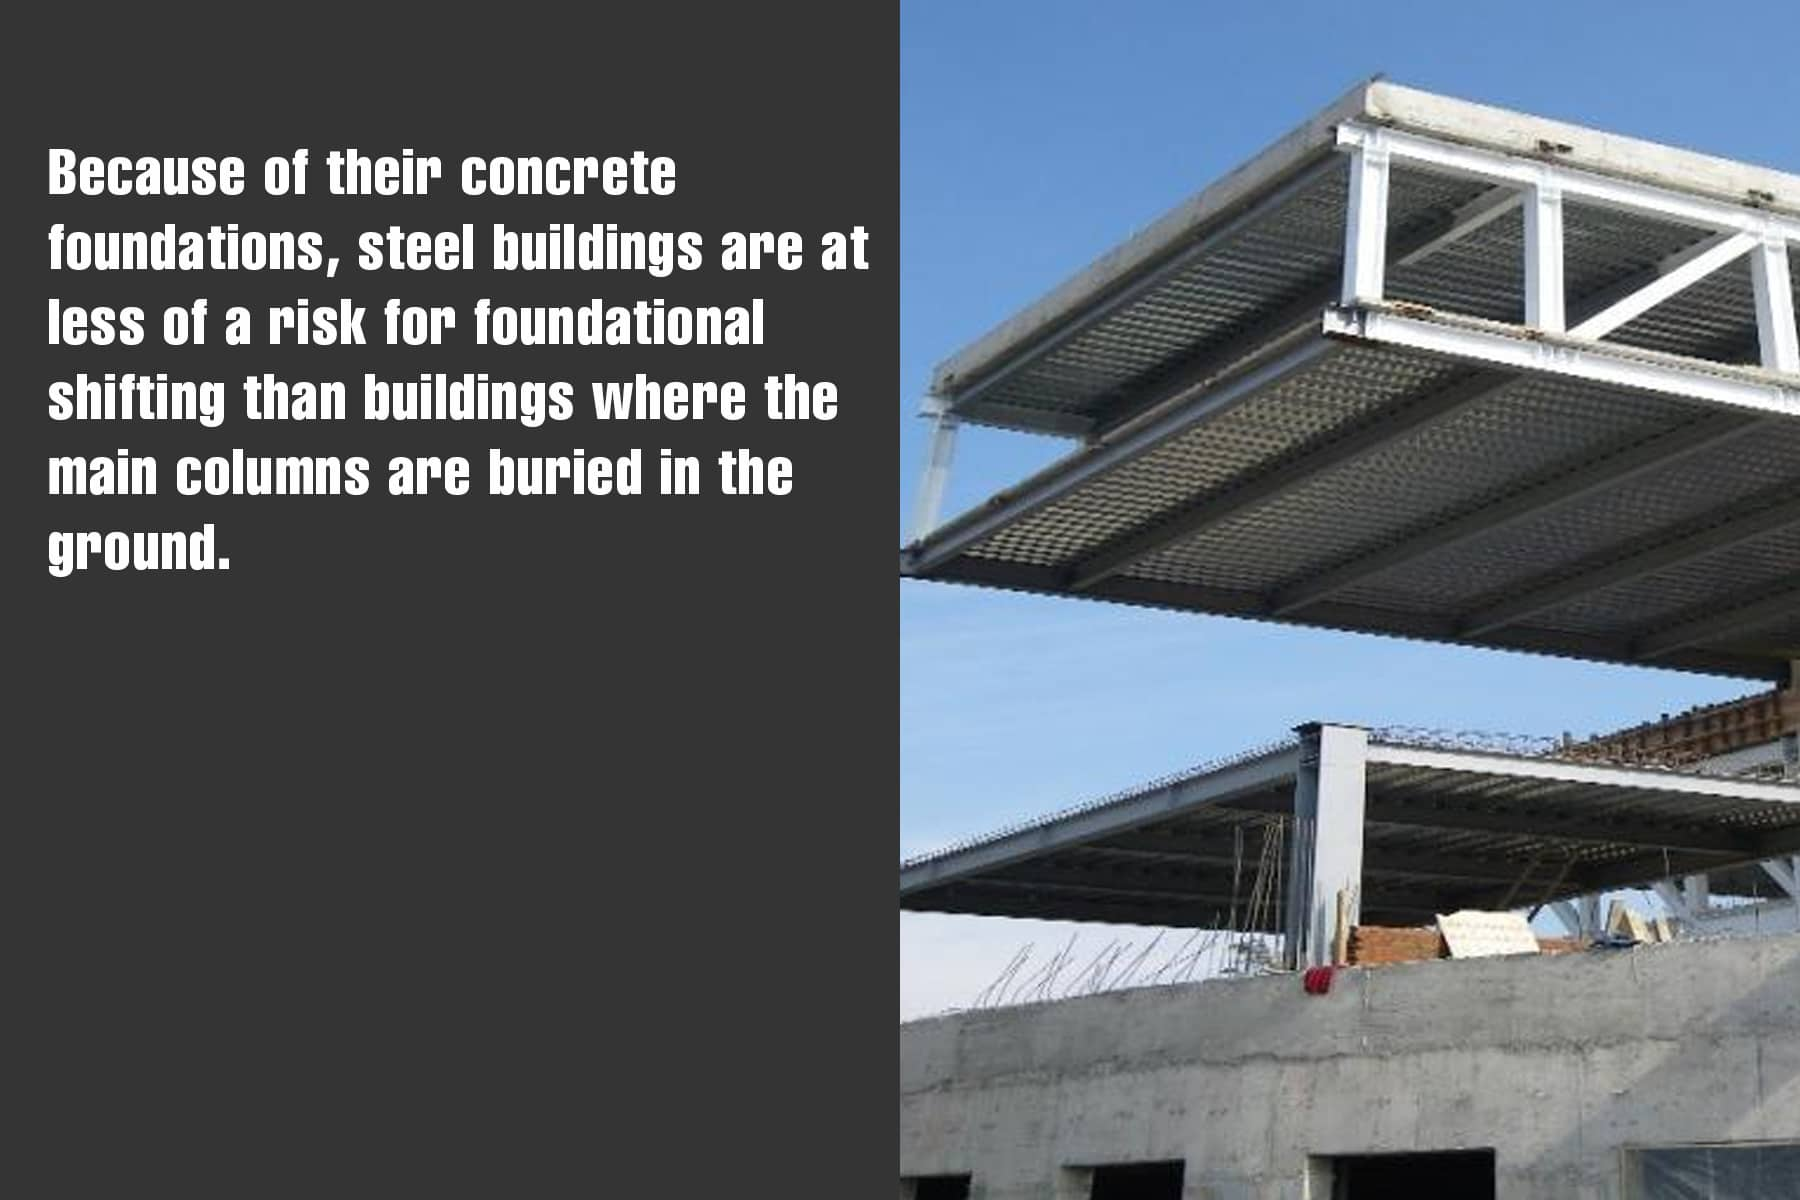 steel buildings are at less risk for foundational shifting